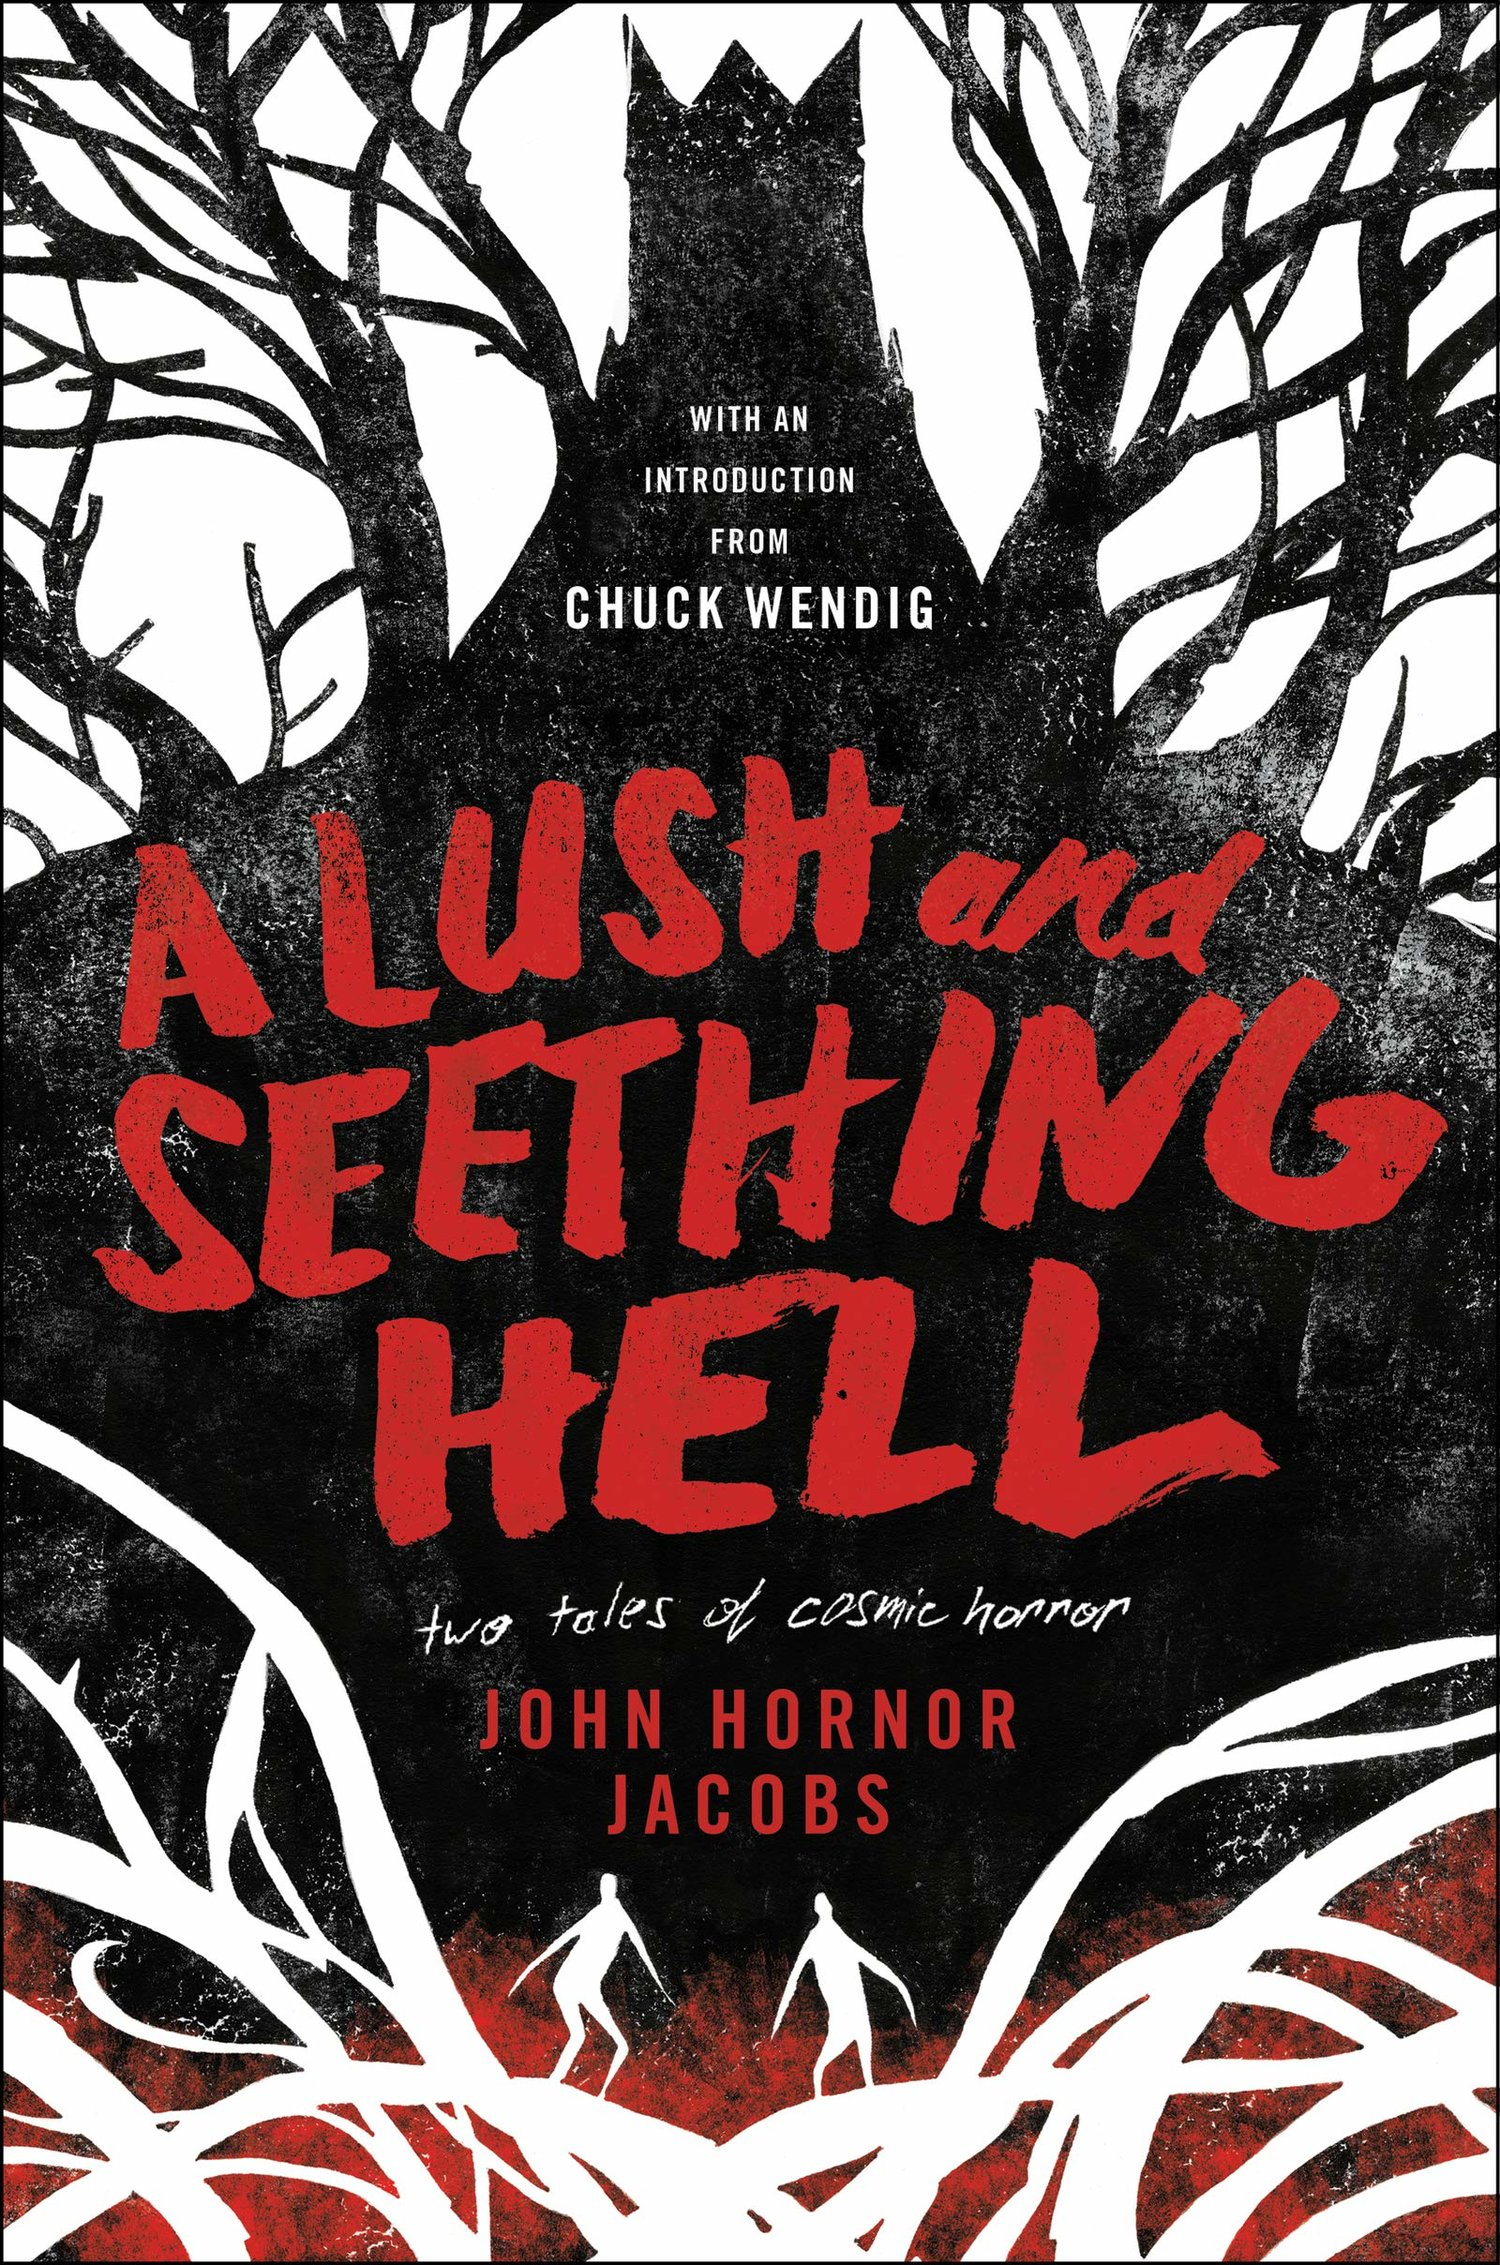 A Lush and Seething Hell [book review] — T  Frohock